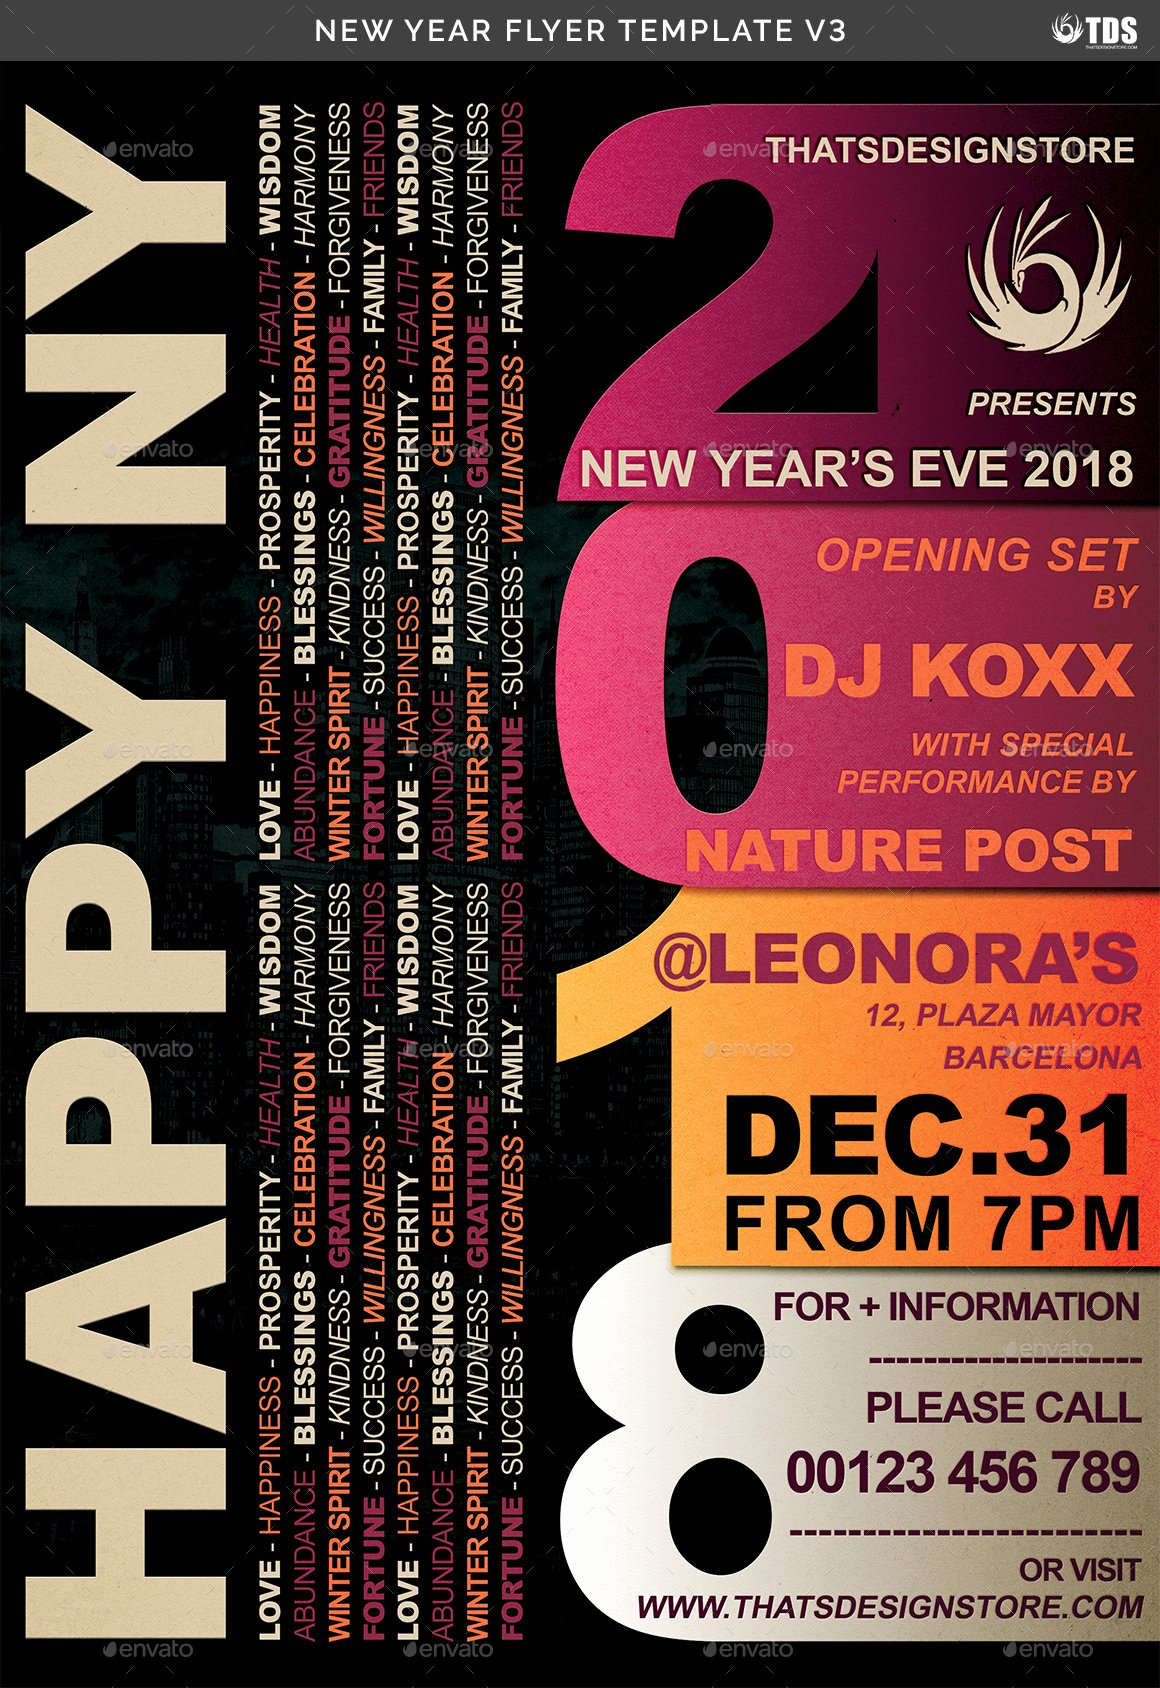 New Year Flyer Template Beautiful New Year Flyer Template V3 by Lou606